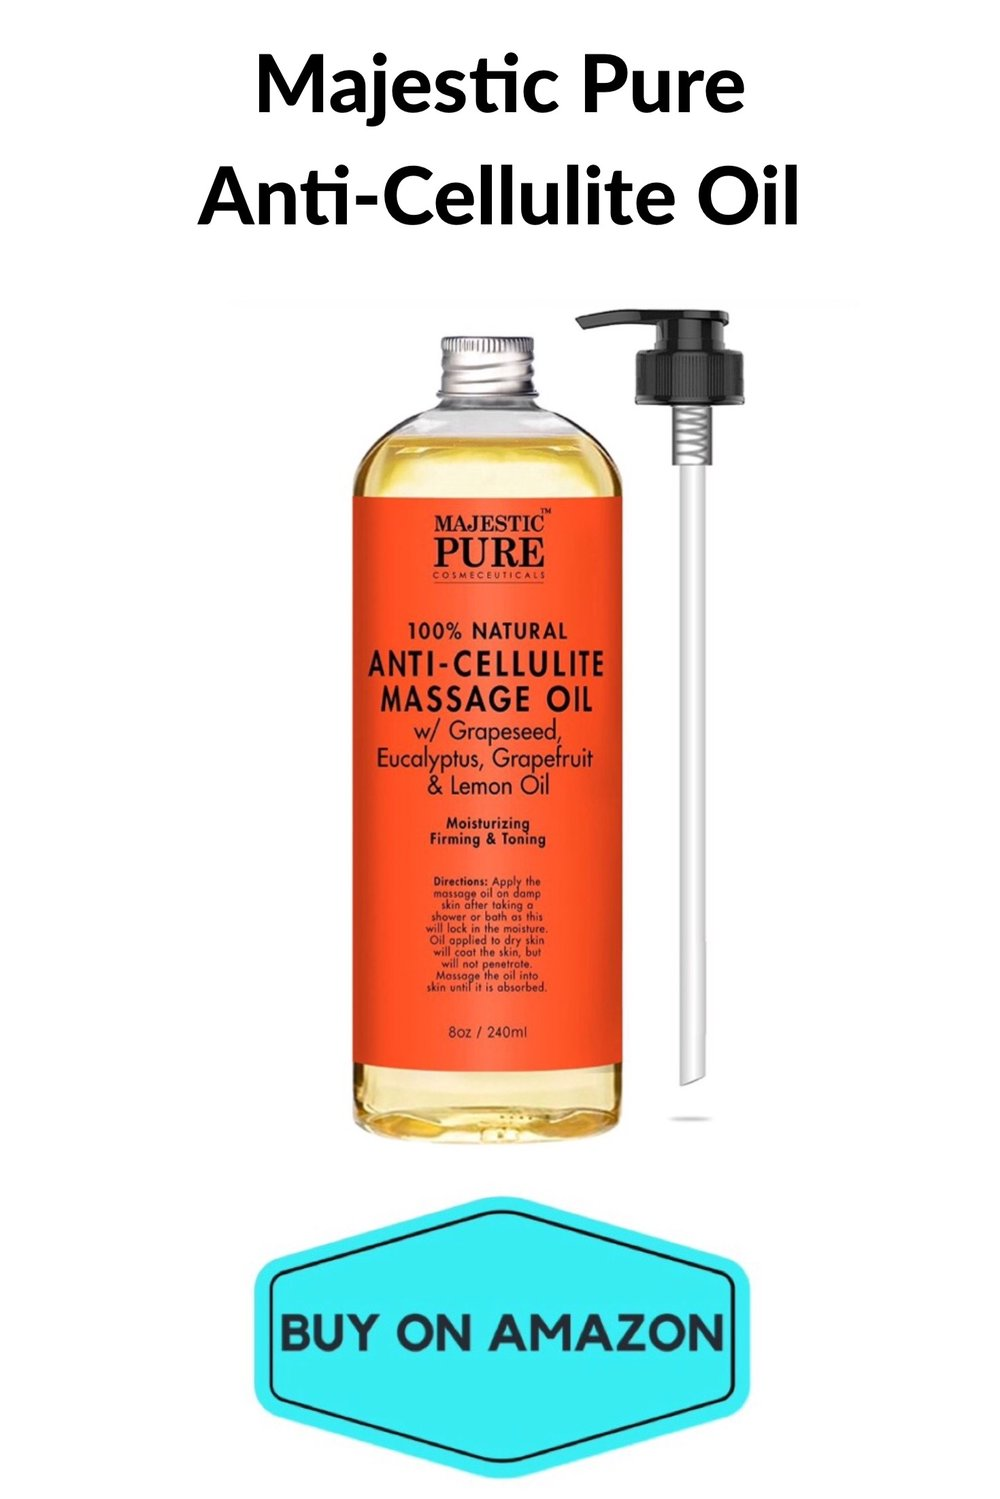 Majestic Pure Anti-Cellulite Oil